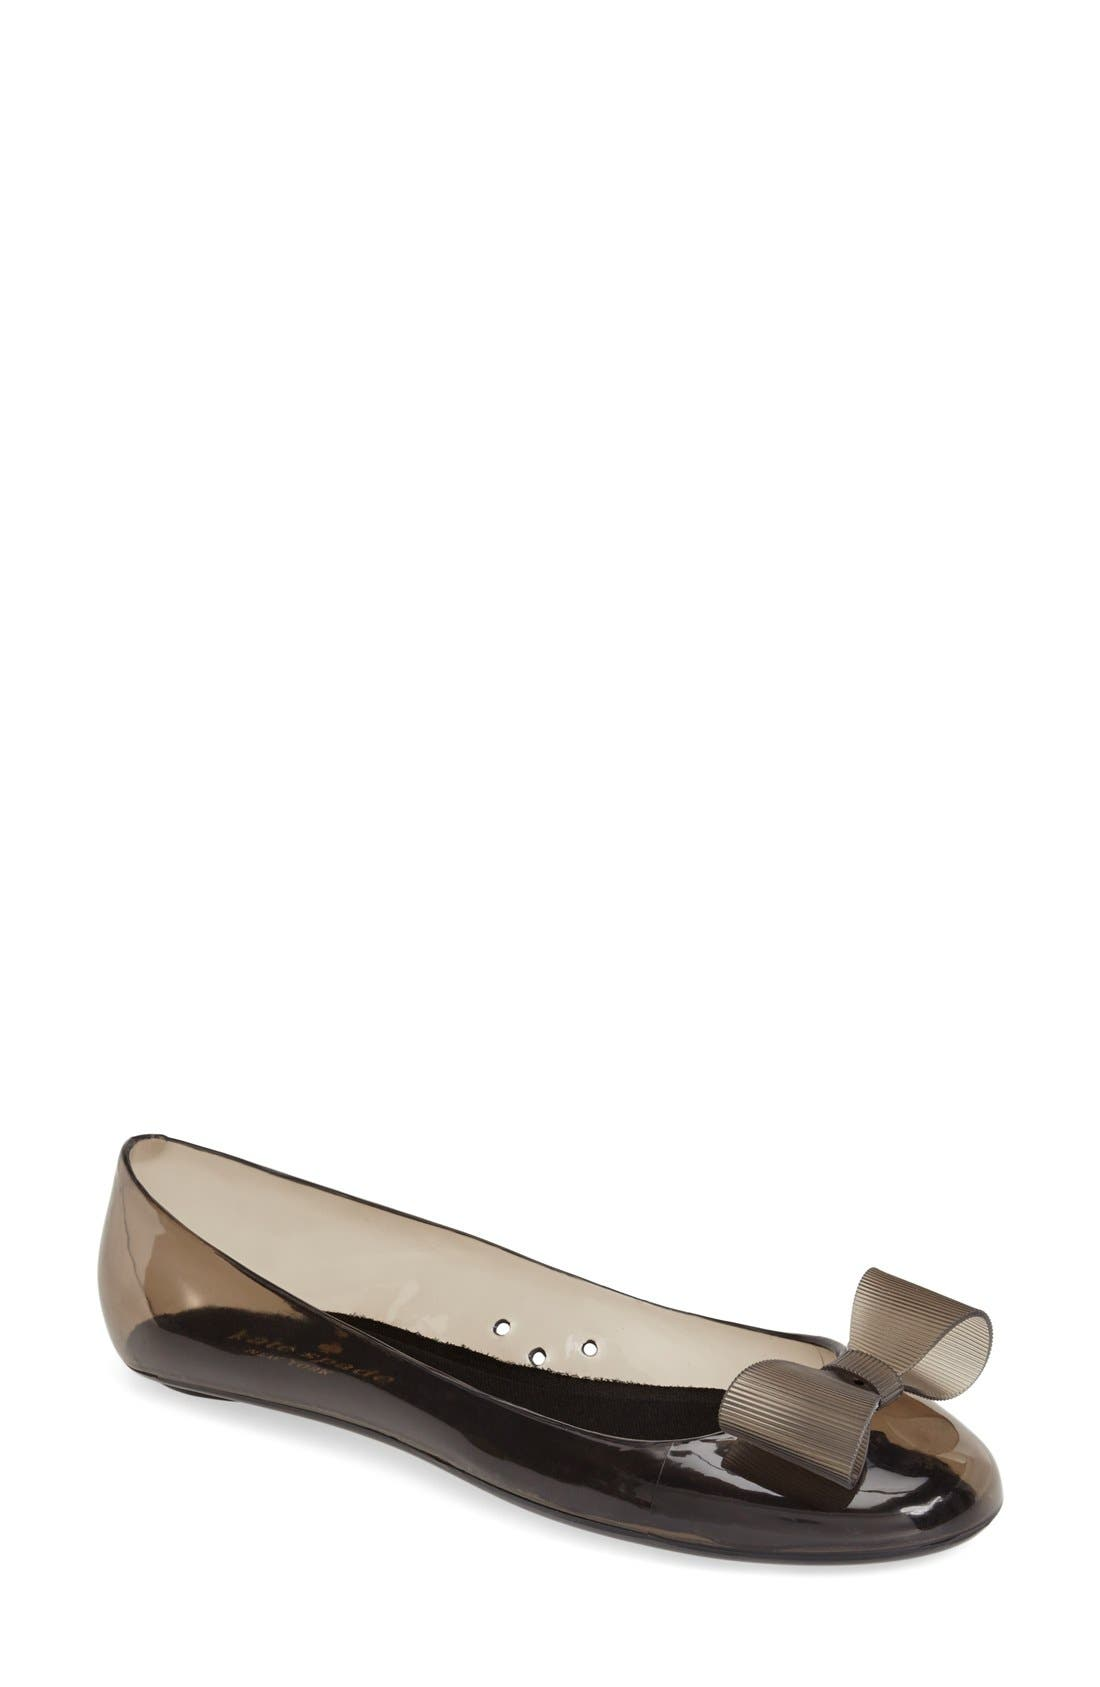 Alternate Image 1 Selected - kate spade new york 'jove' jelly skimmer flat